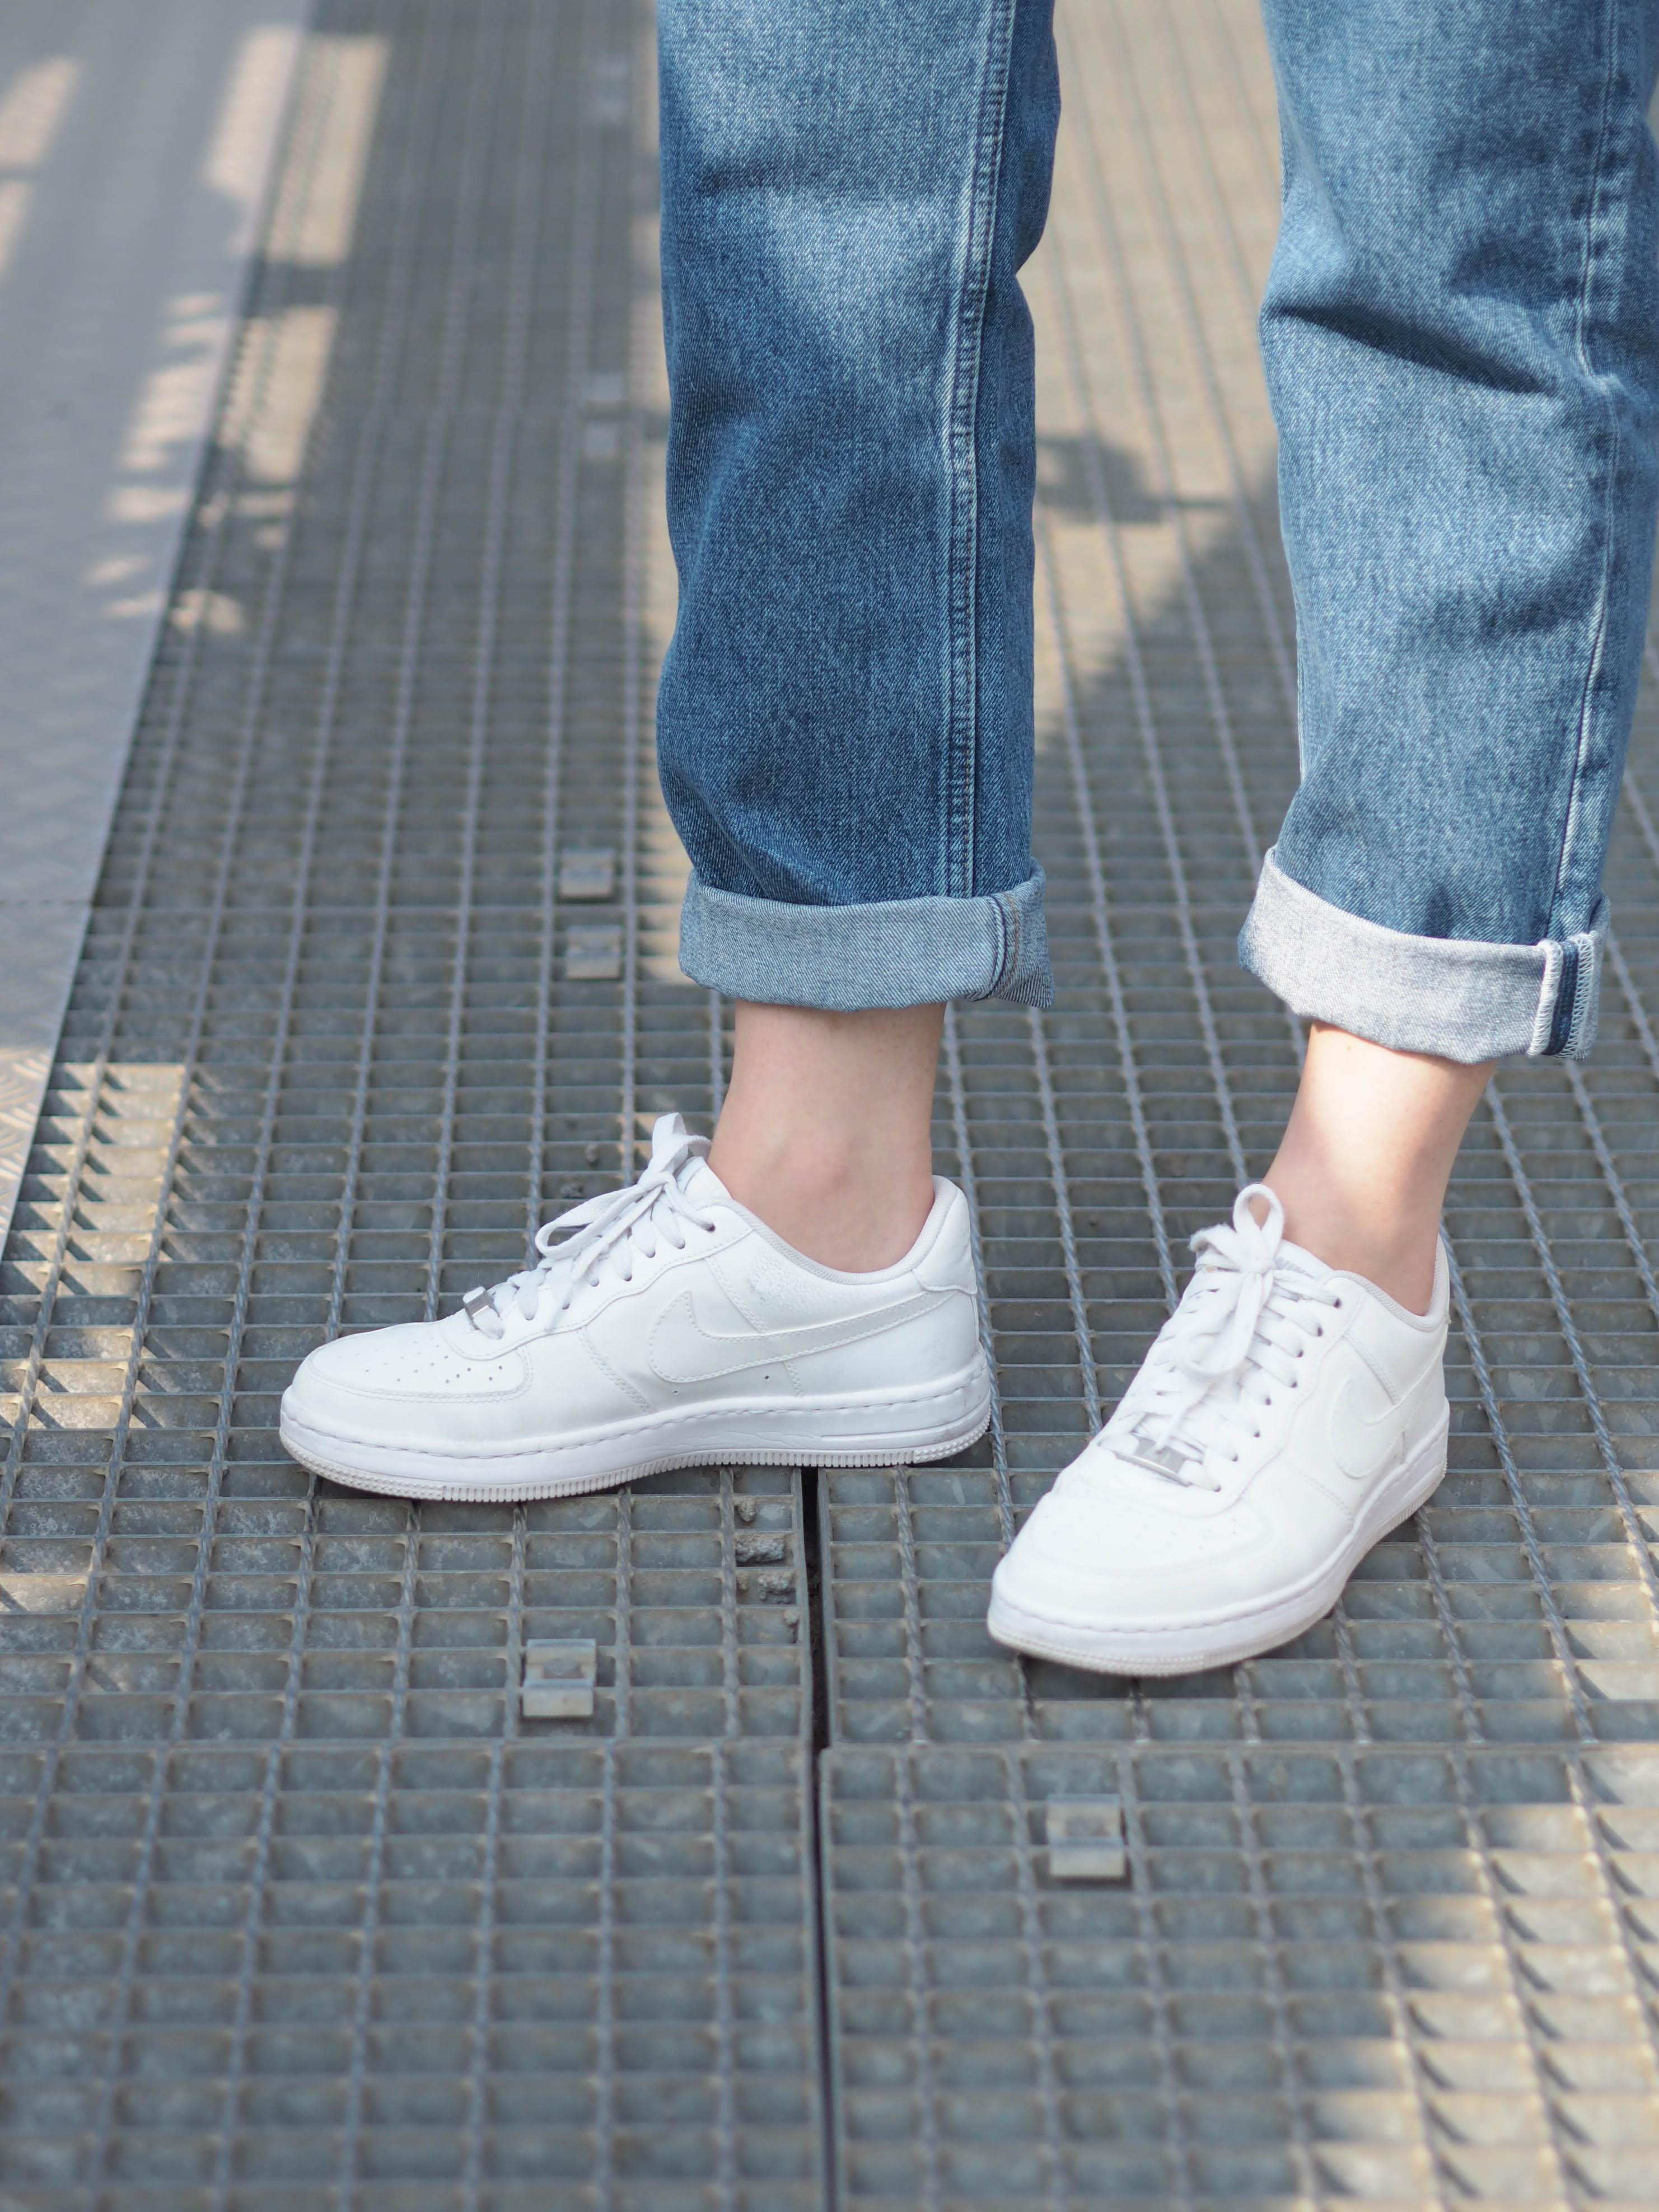 Sonntagsausflug #sneaker #whitesneaker #nike #airforce #jeans #cropped #momjeans